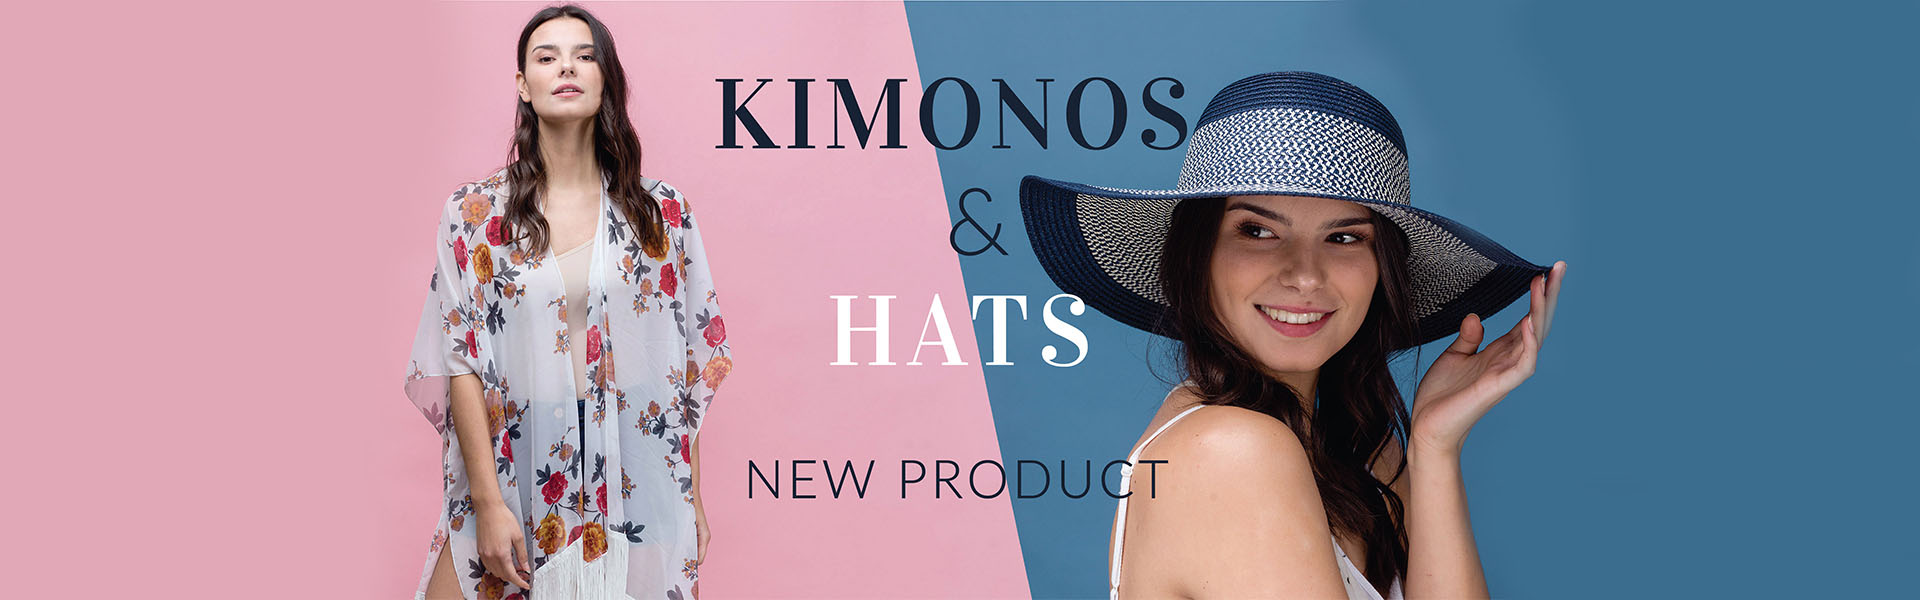 Hats and Kimonos